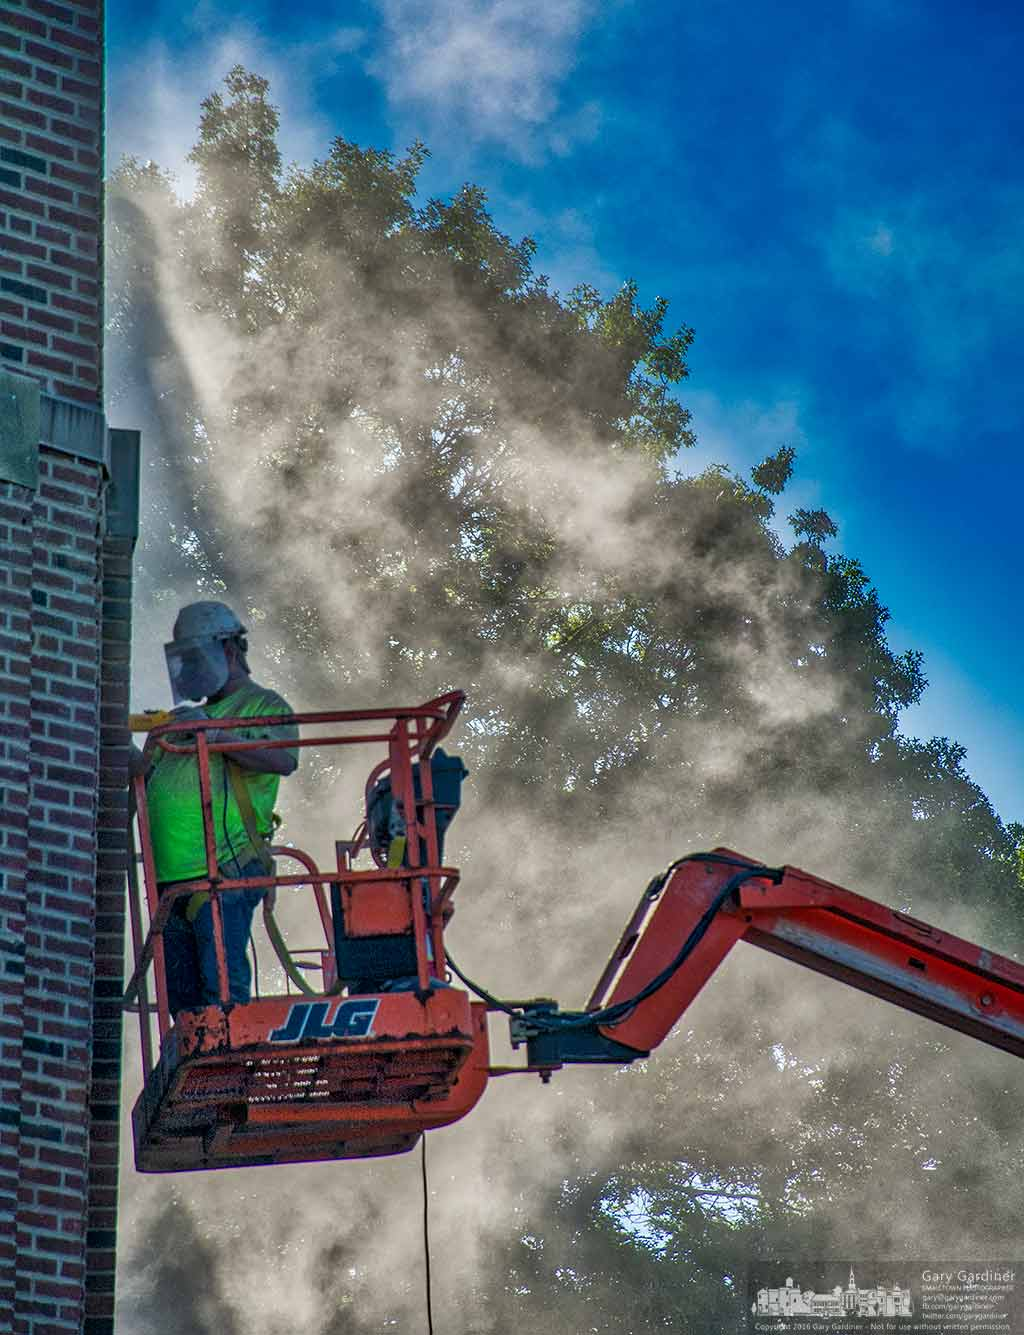 A worker grinds away mortar between bricks on the Battelle Fine Arts Center as part of the buildings renovation. My Final Photo for June 9, 2016.